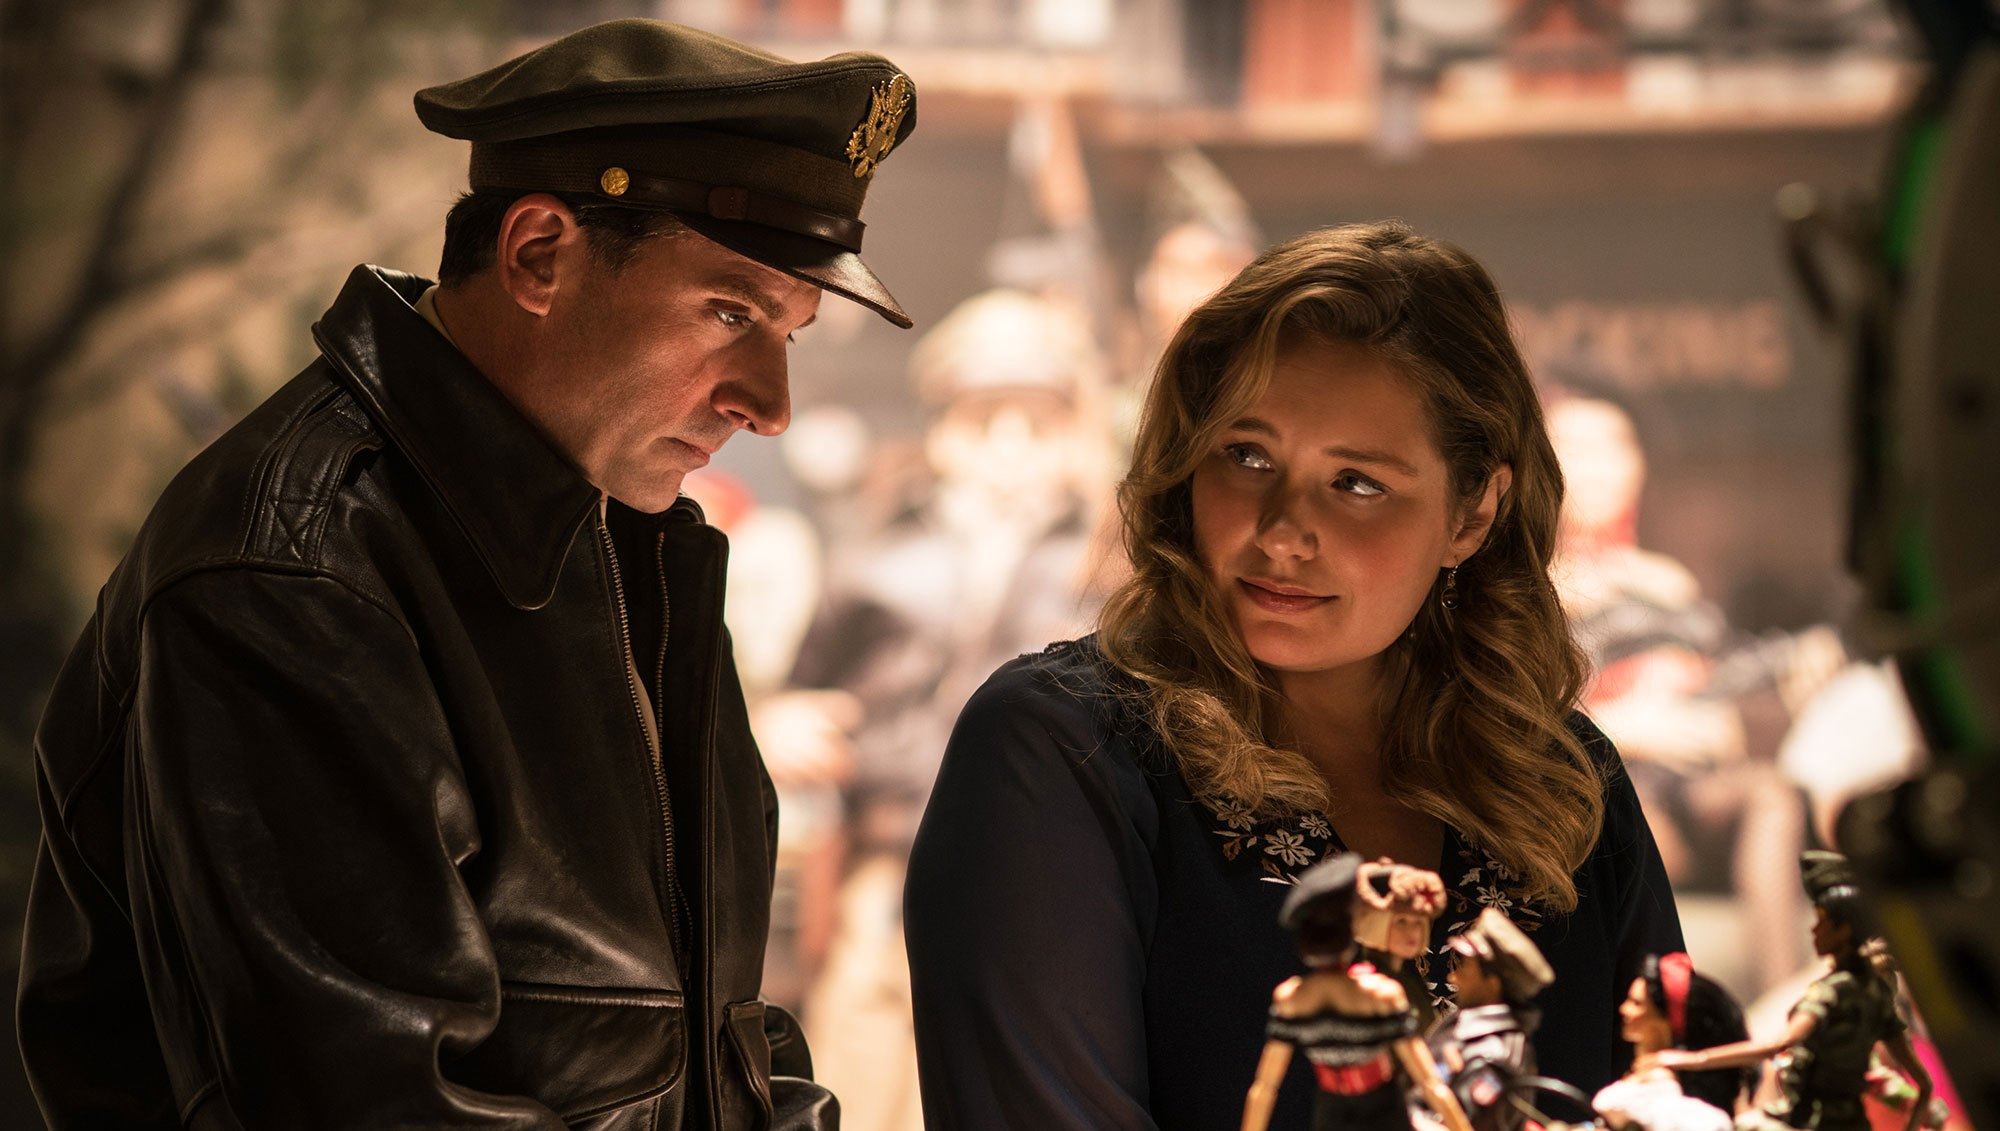 Don't Go There! 'Welcome to Marwen' Gets 1.5 Stars: Read the Review!